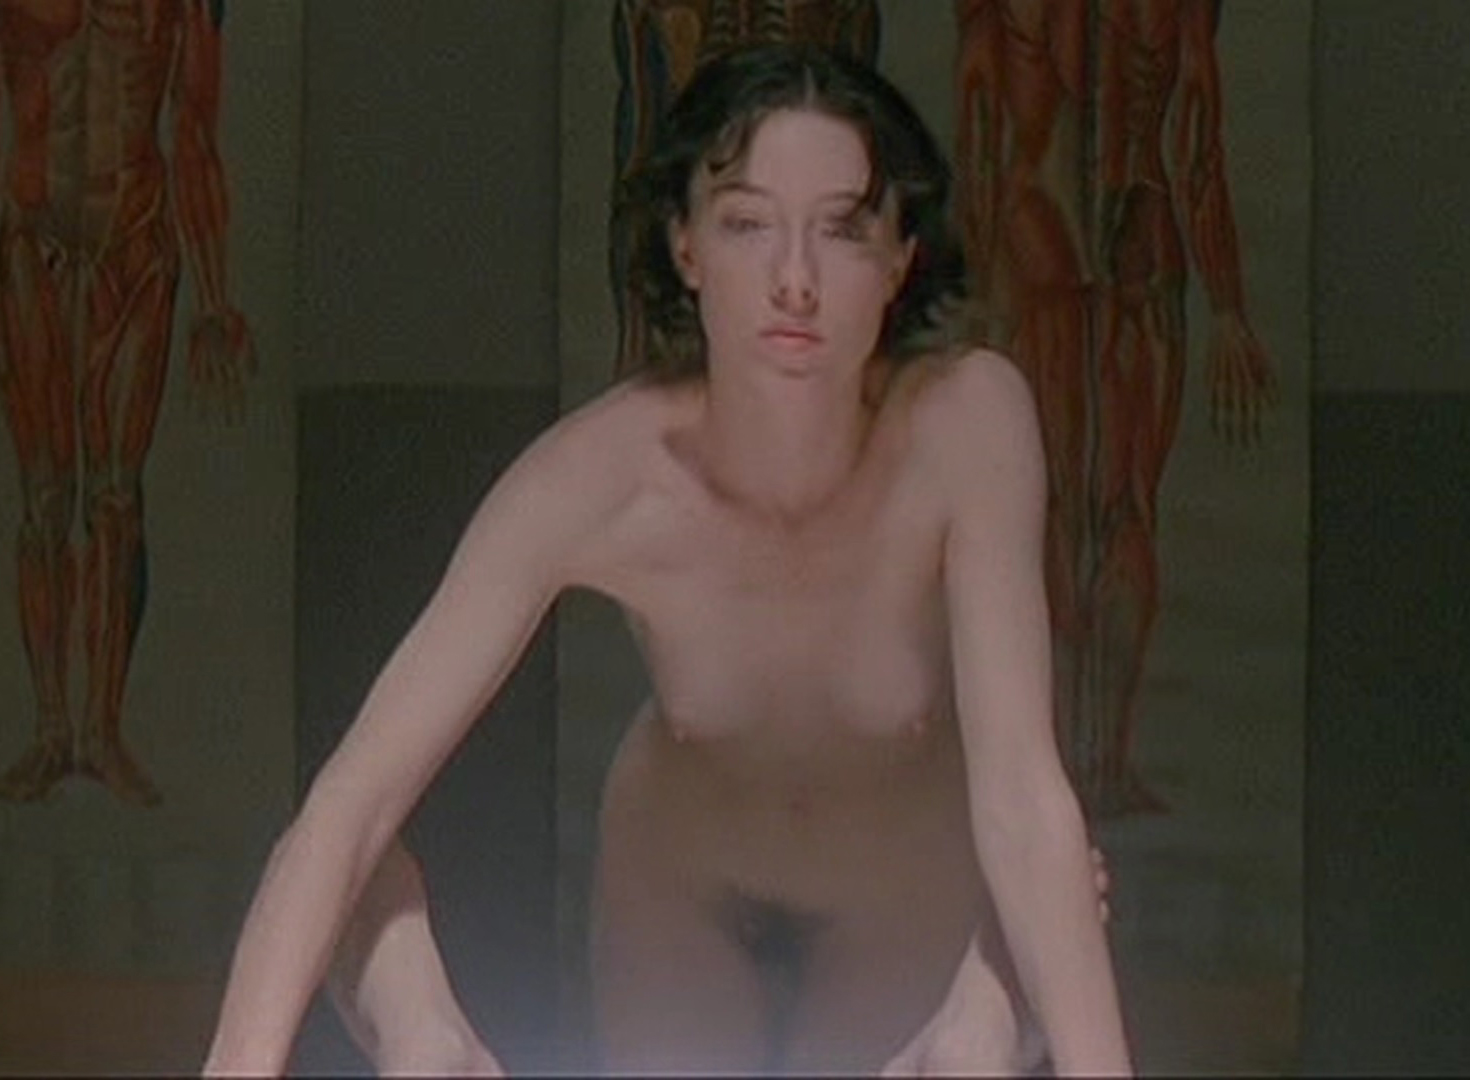 Molly Parker Nude Scene In Kissed Movie - Free Video-8237